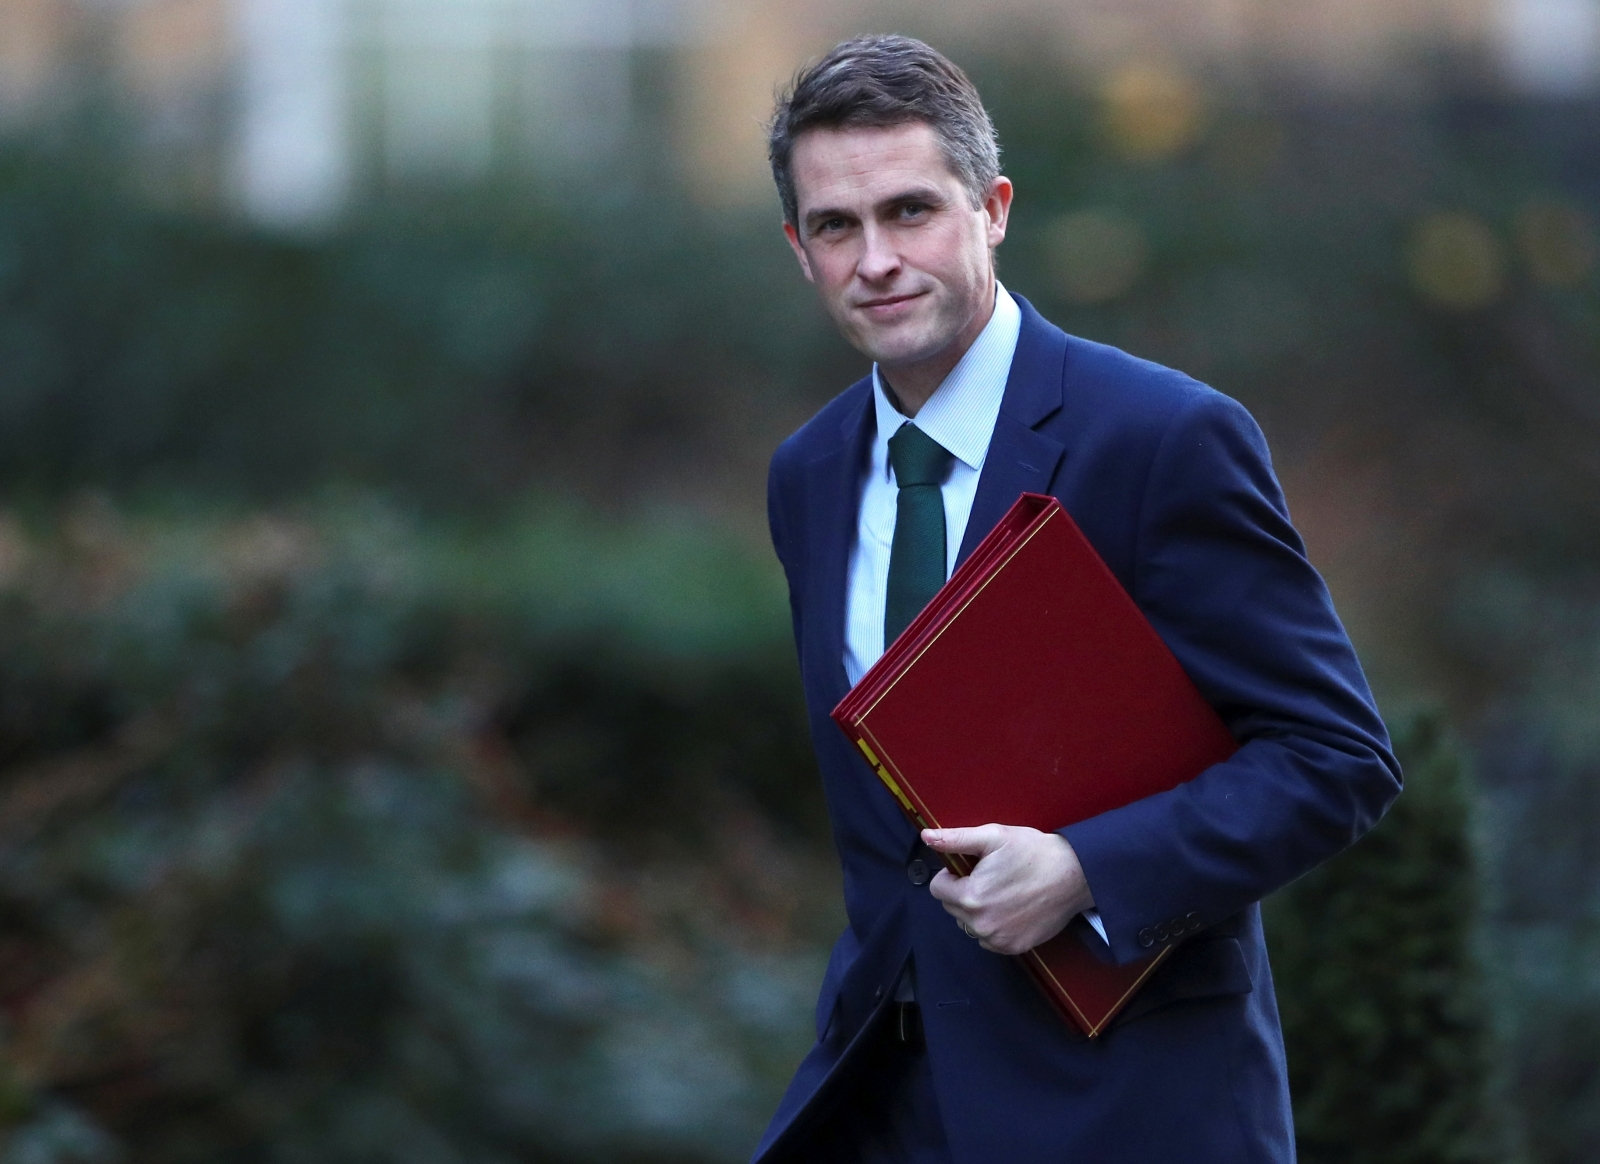 Defence secretary warns Russian Federation  is ready to attack UK's energy infrastructure